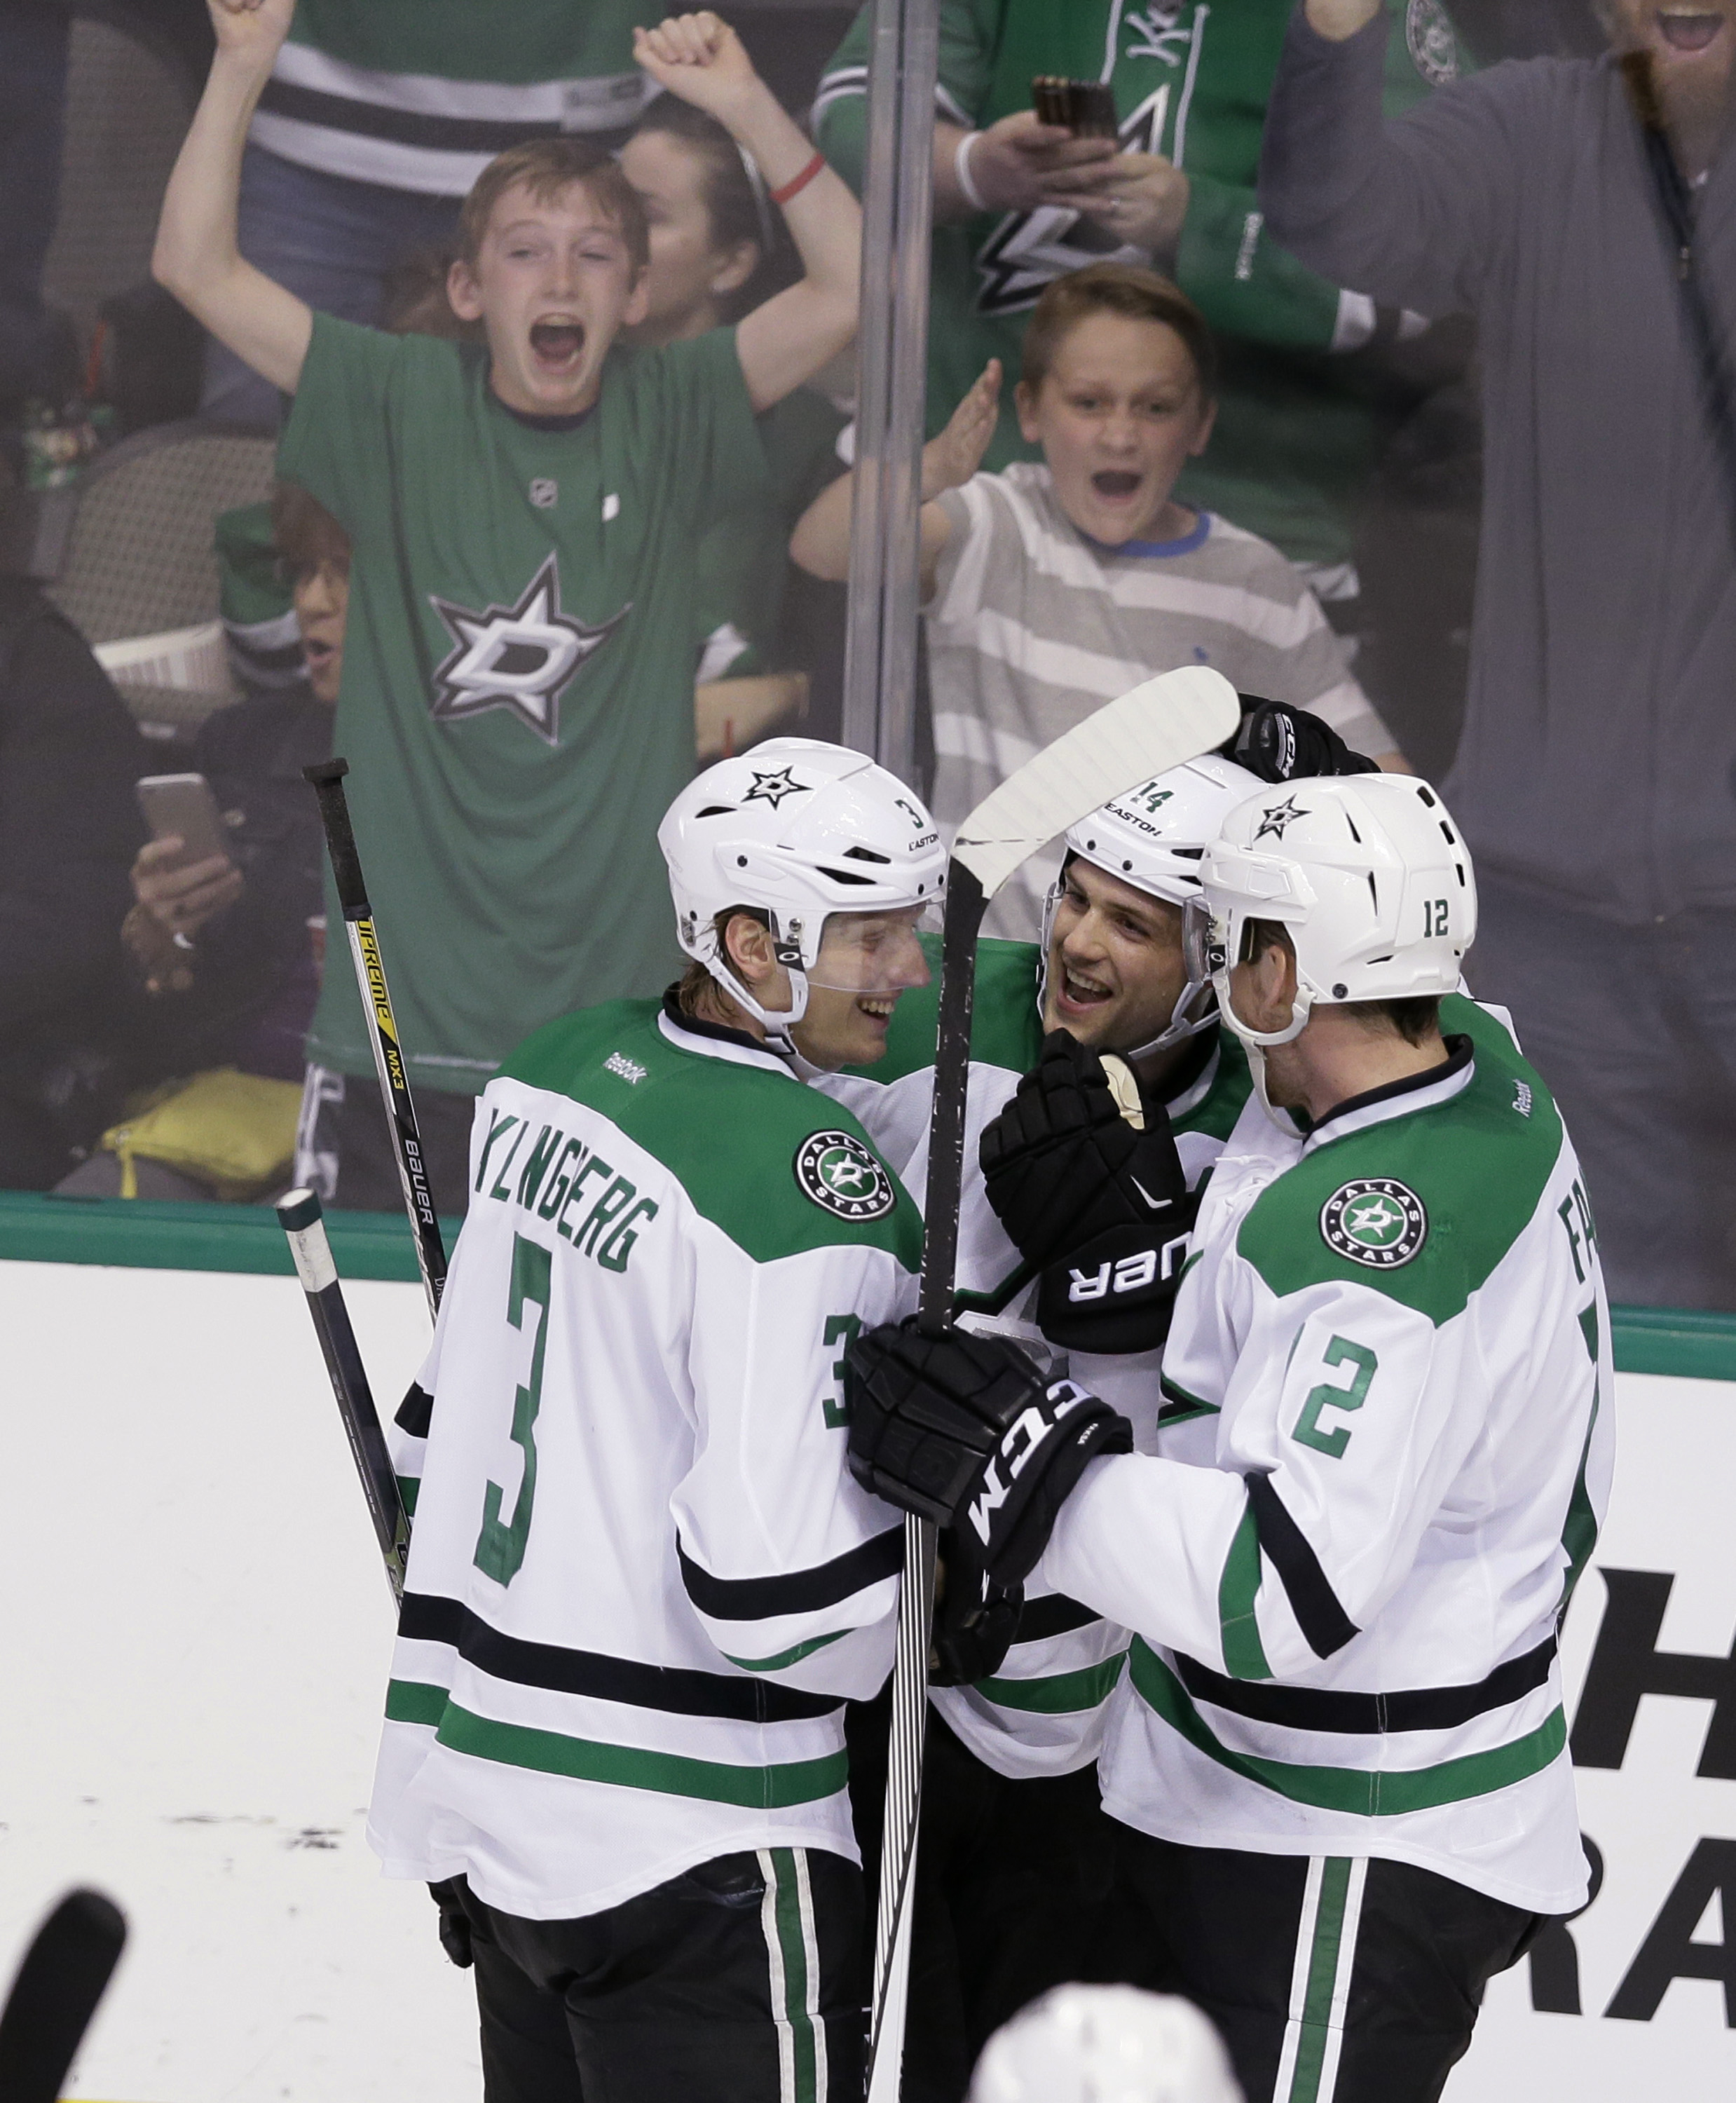 Dallas Stars left wing Jamie Benn, center celebrates scoring a goal with teammates John Klingberg (3) and Kris Russell (2) during the second period of an NHL hockey game against the Arizona Coyotes on Thursday, March 31, 2016, in Dallas. (AP Photo/LM Oter